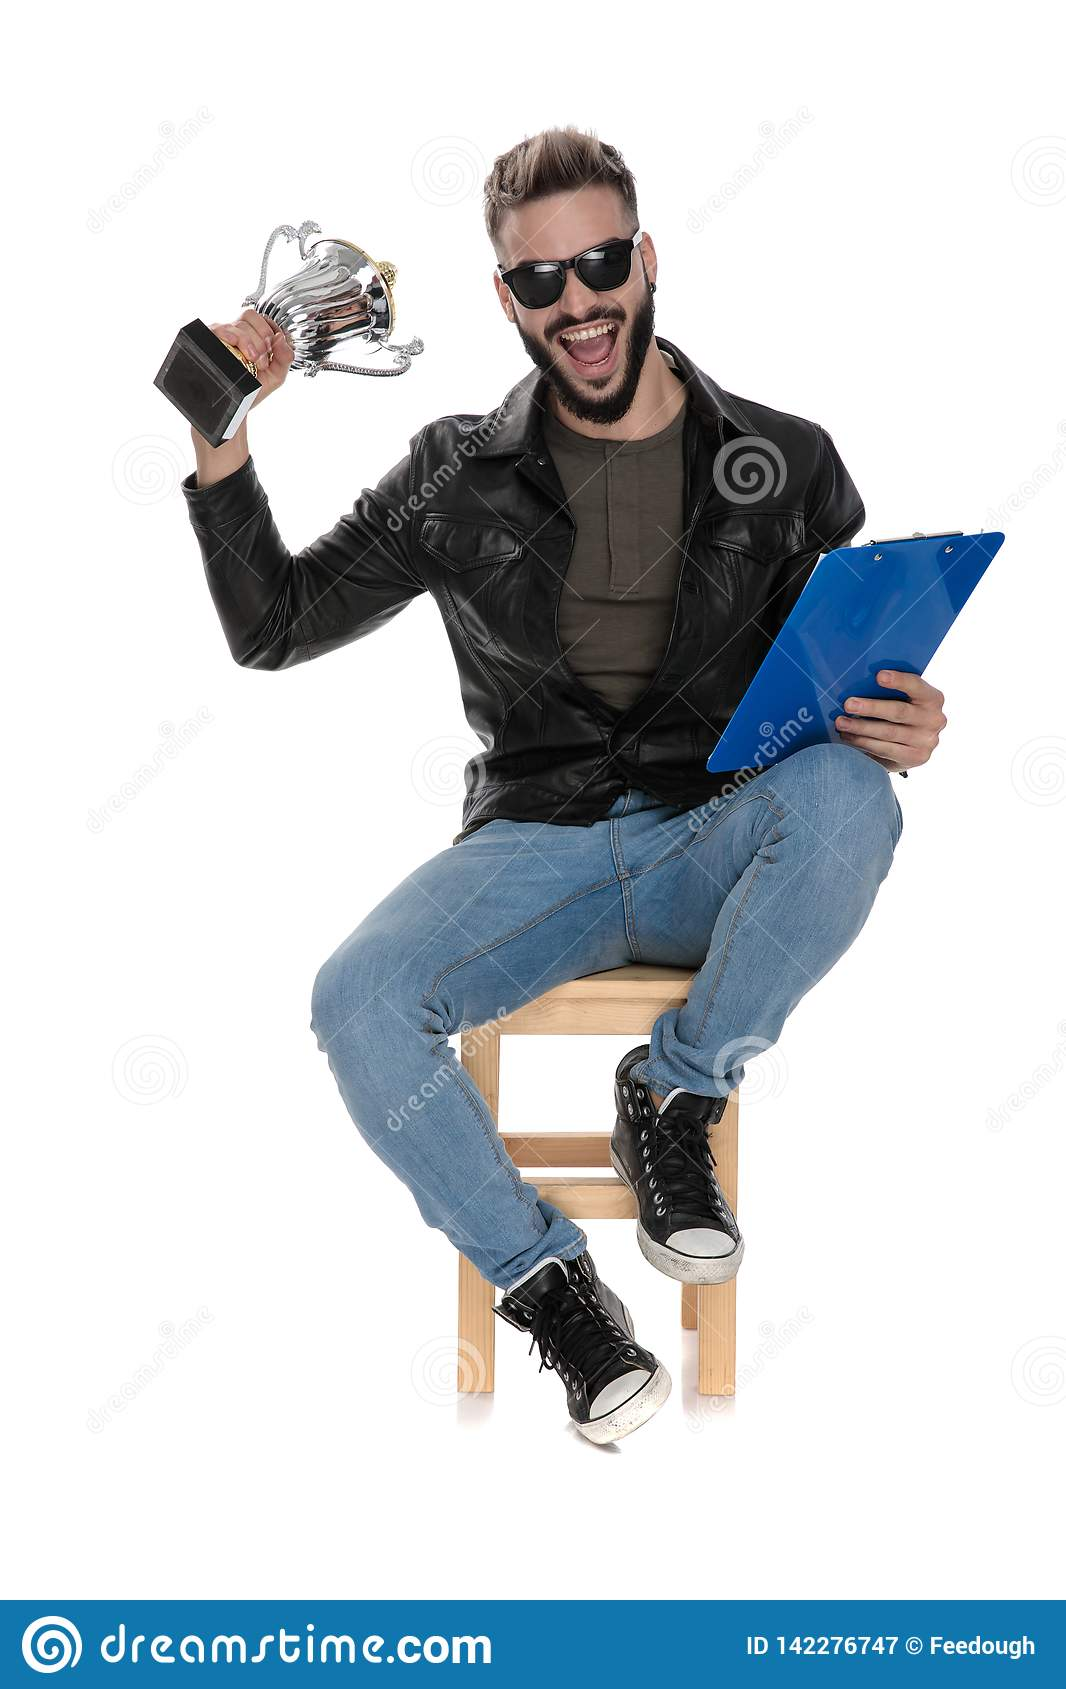 Man sitting on chair holding trophy and blue folder